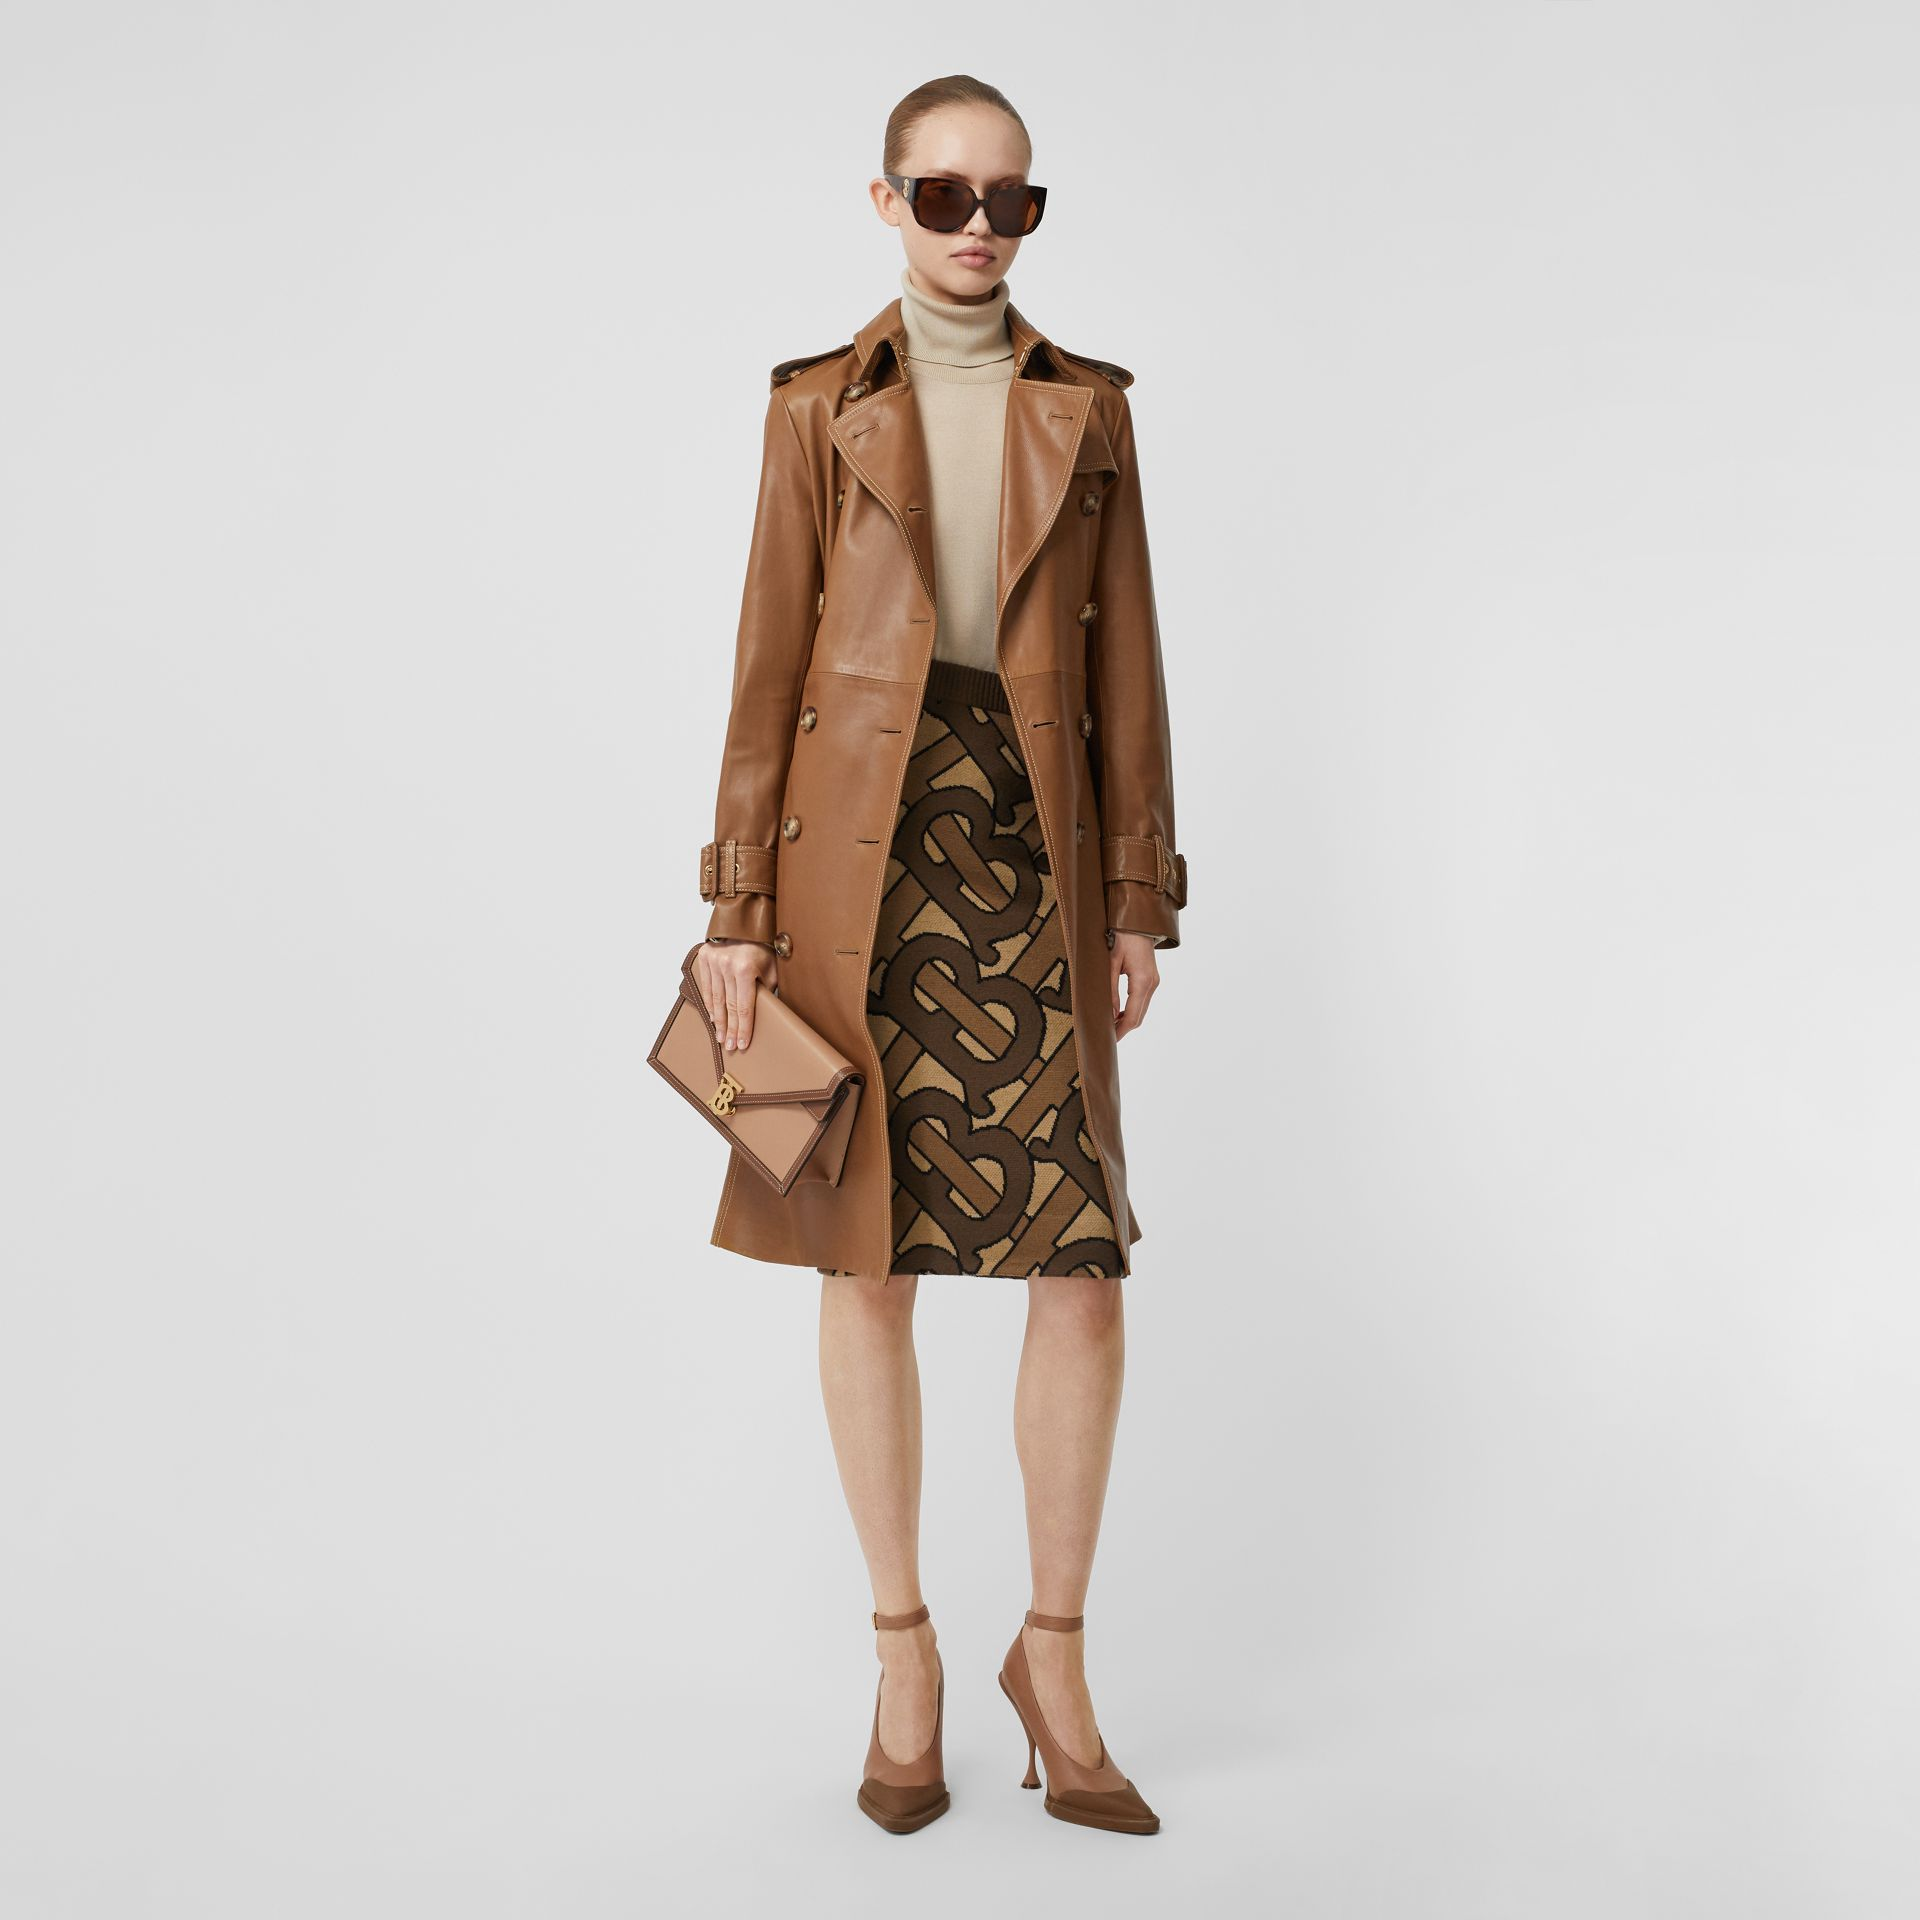 Monogram Intarsia Wool Pencil Skirt in Bridle Brown - Women | Burberry Canada - gallery image 6